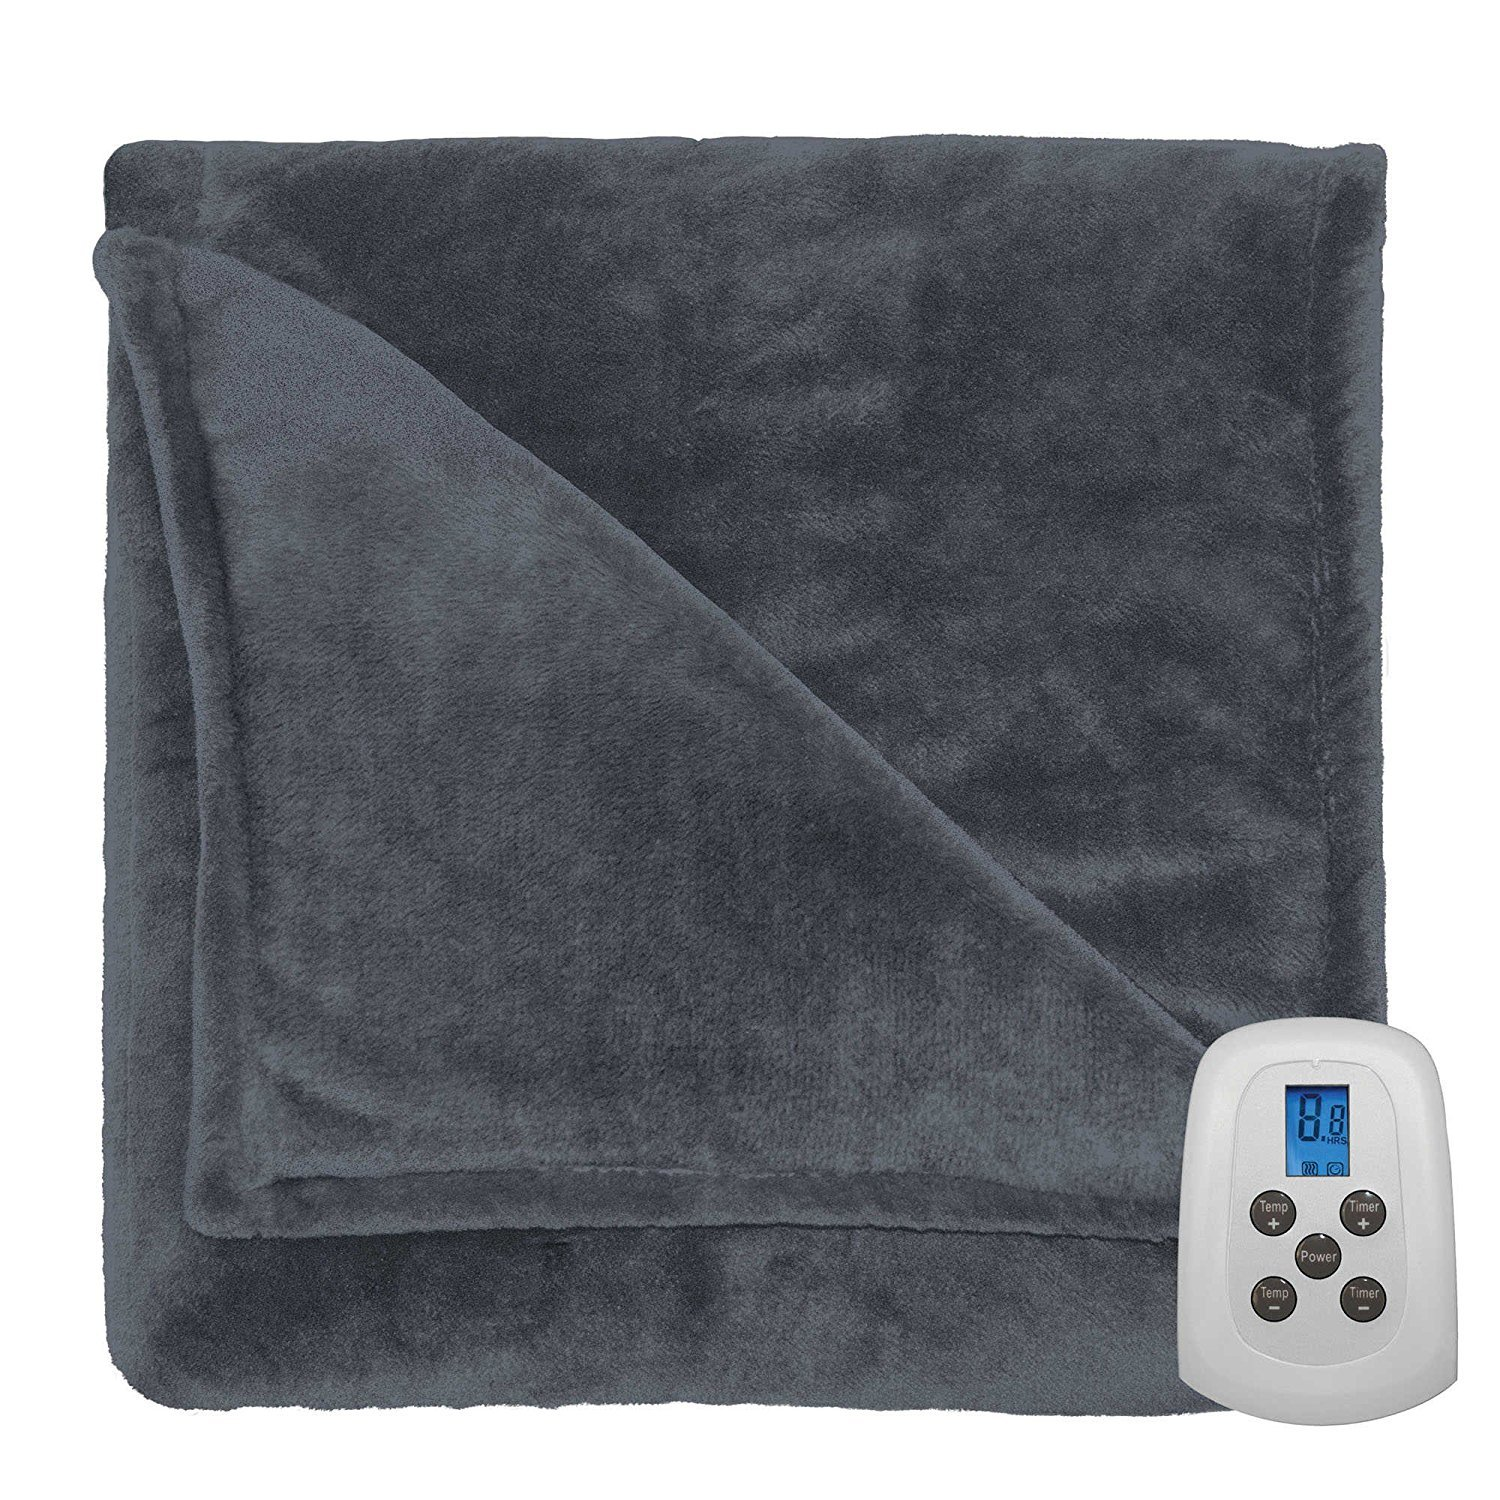 Therapedic Programmable Silky Plush Warming Blanket, Ash, Queen